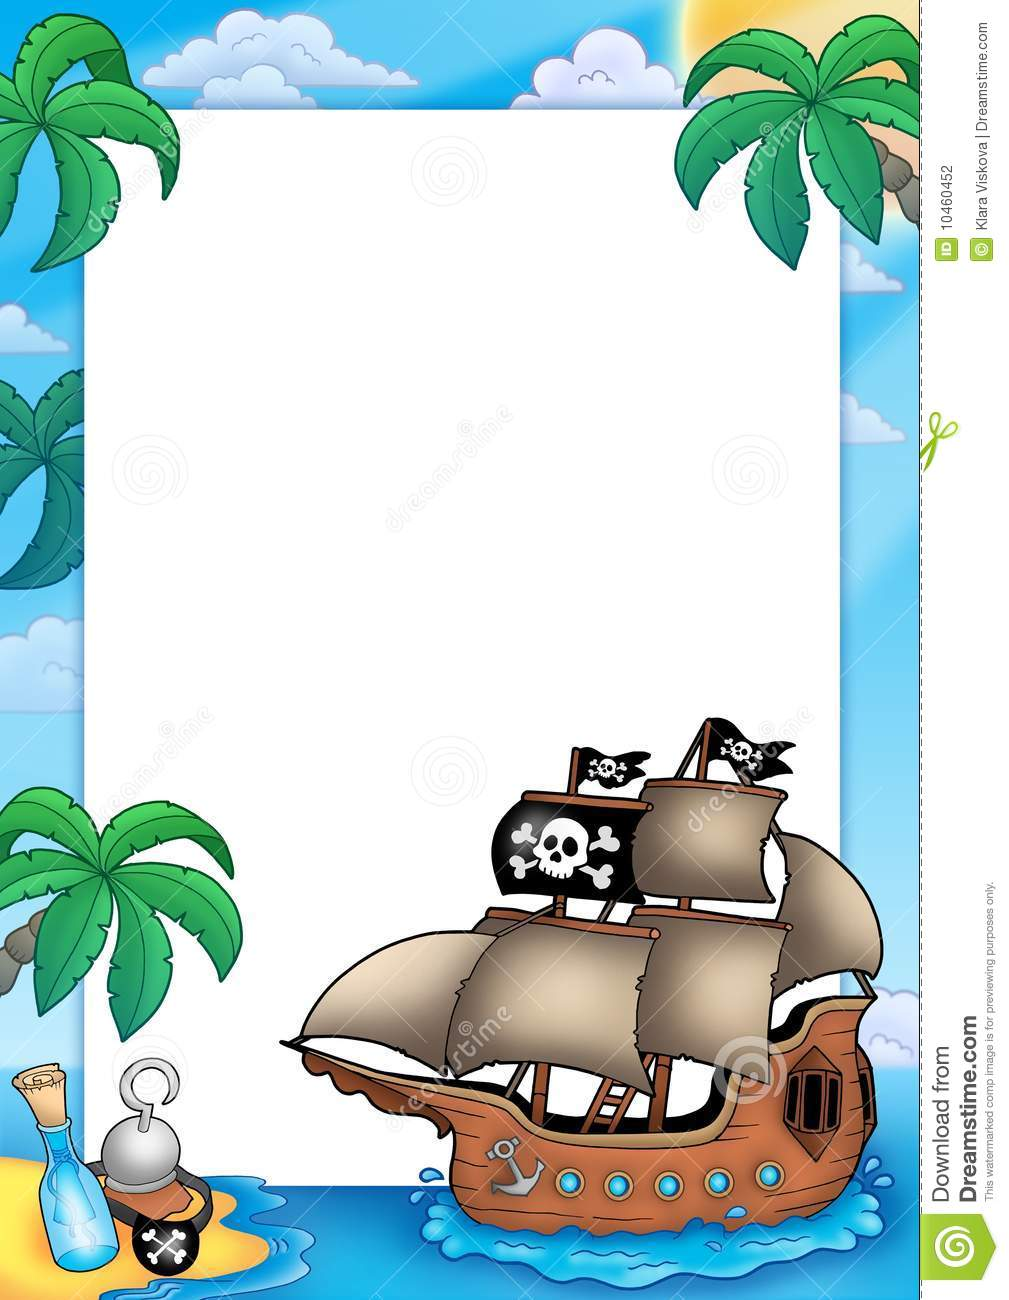 Frame with pirate ship stock illustration. Illustration of ...